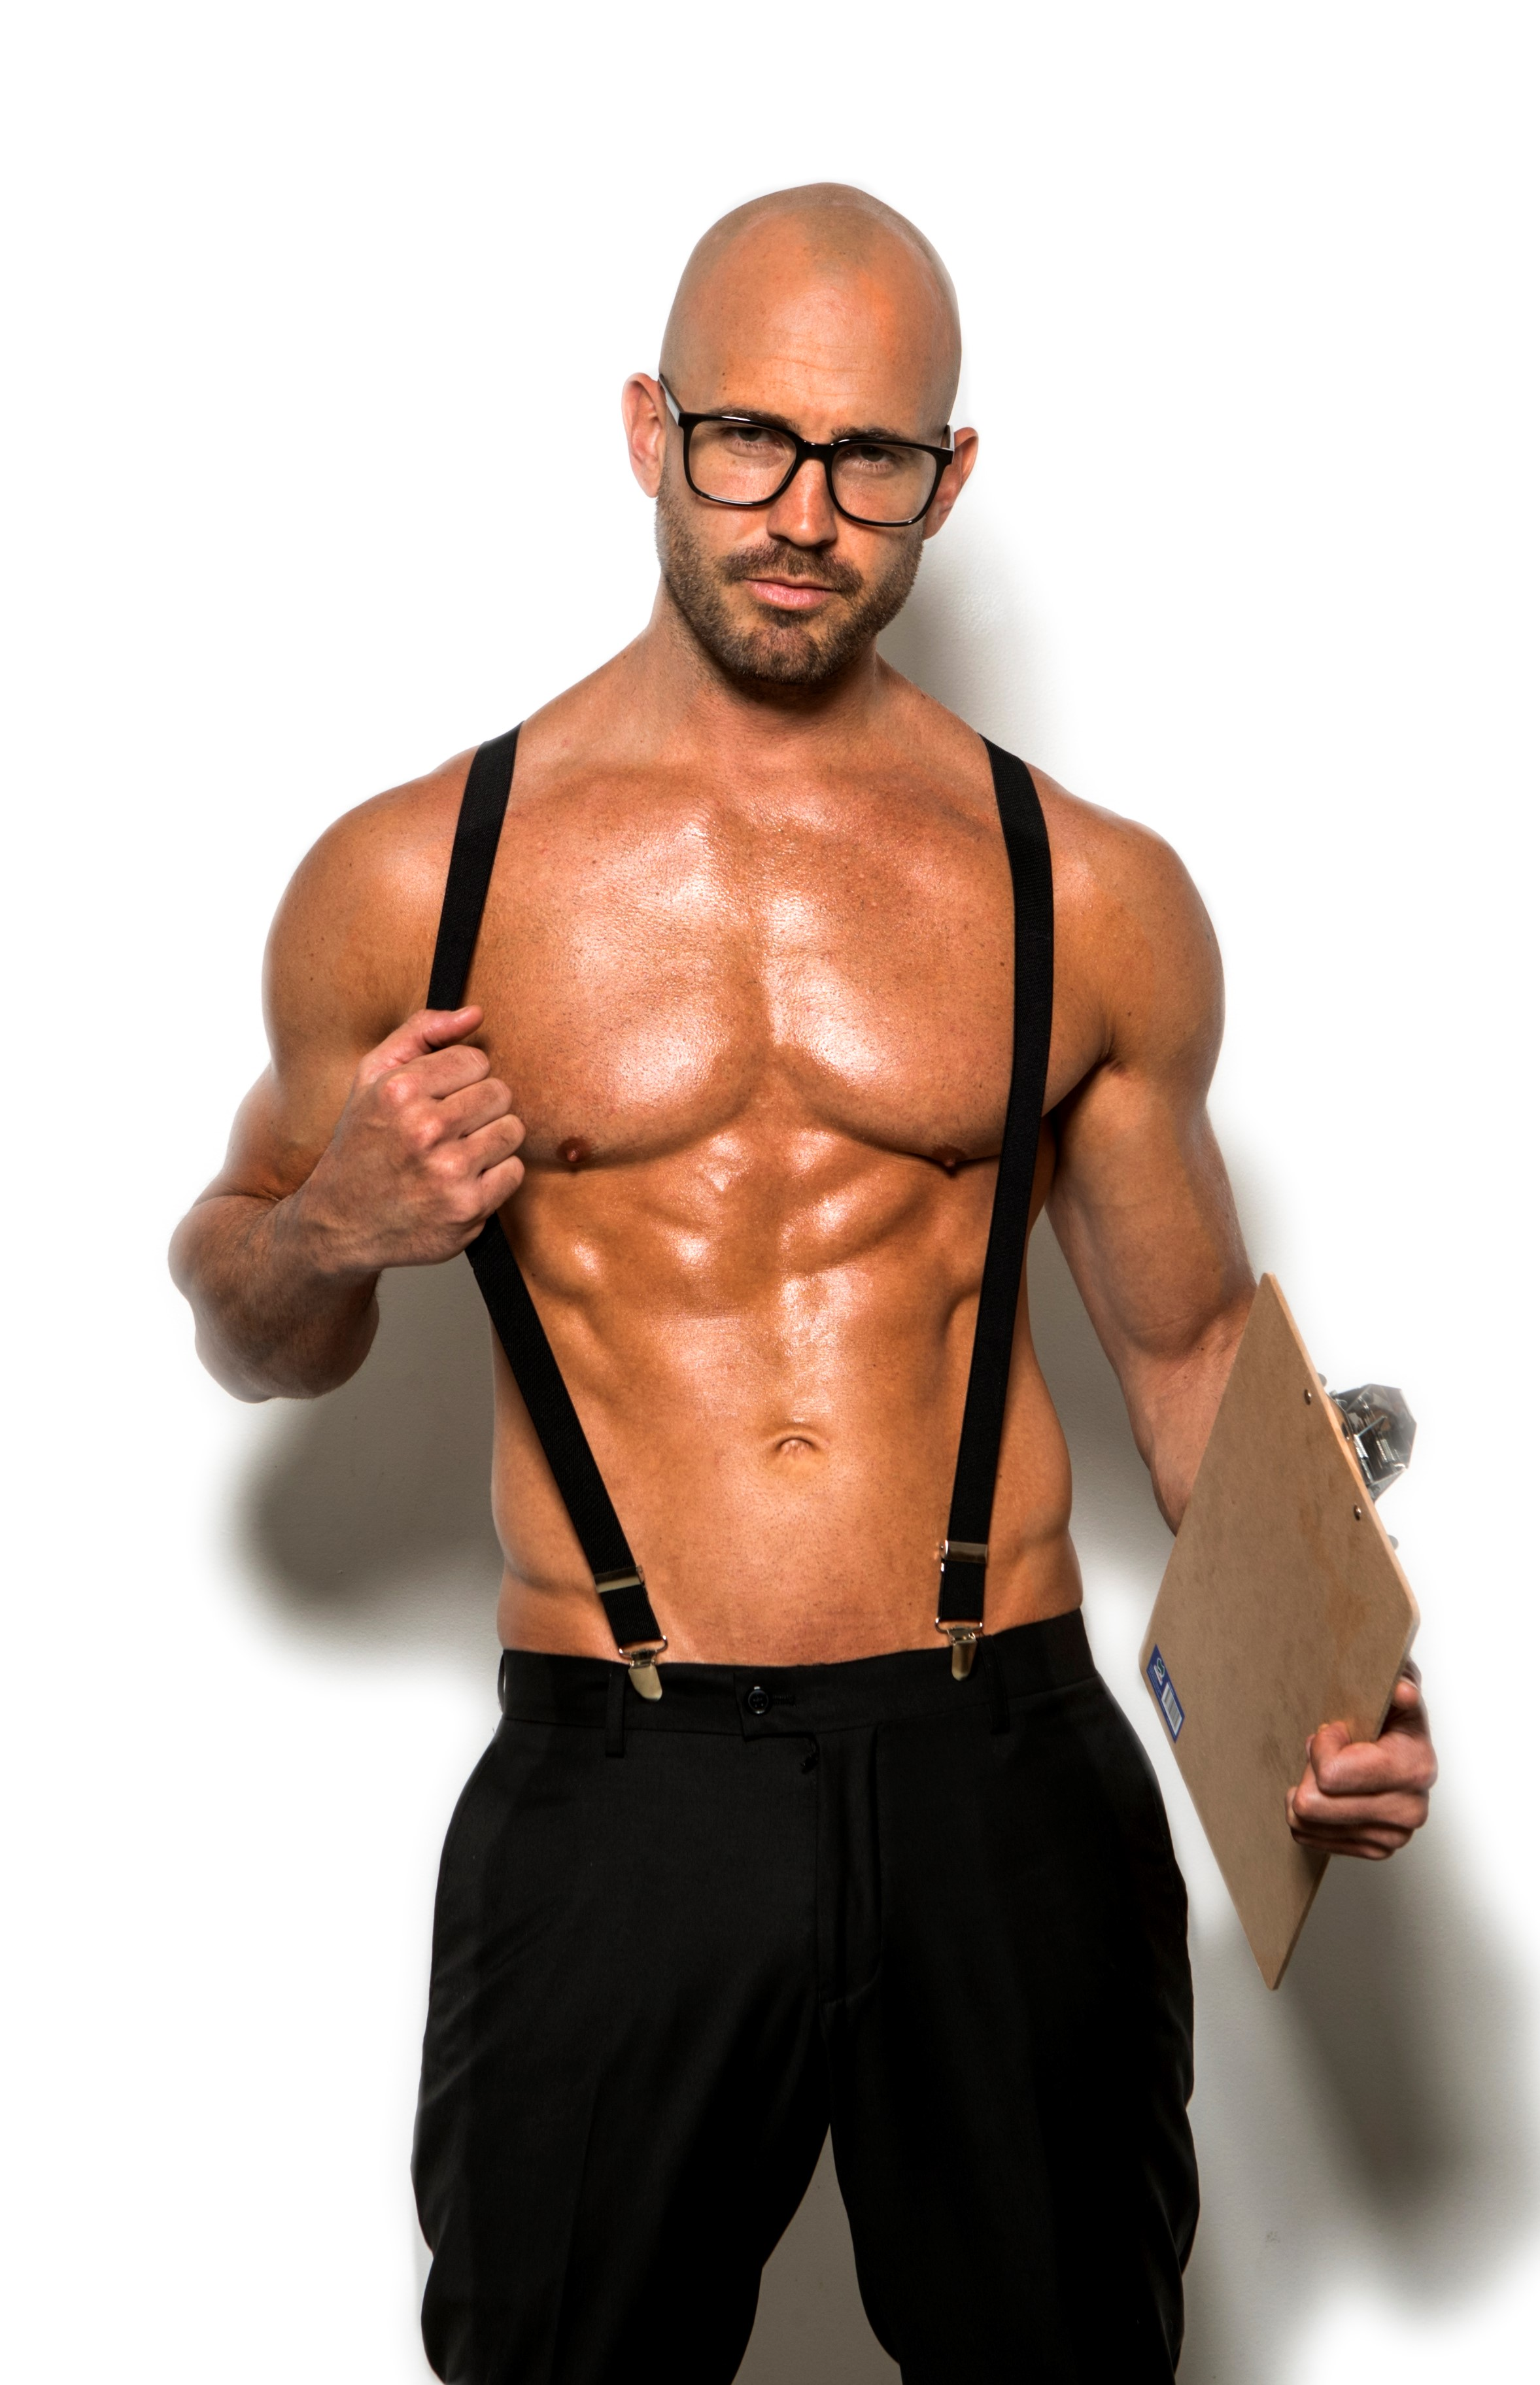 Male topless waitress, topless waiter, buff butler, naked butler for hire in brisbane gold coast and byron bay.